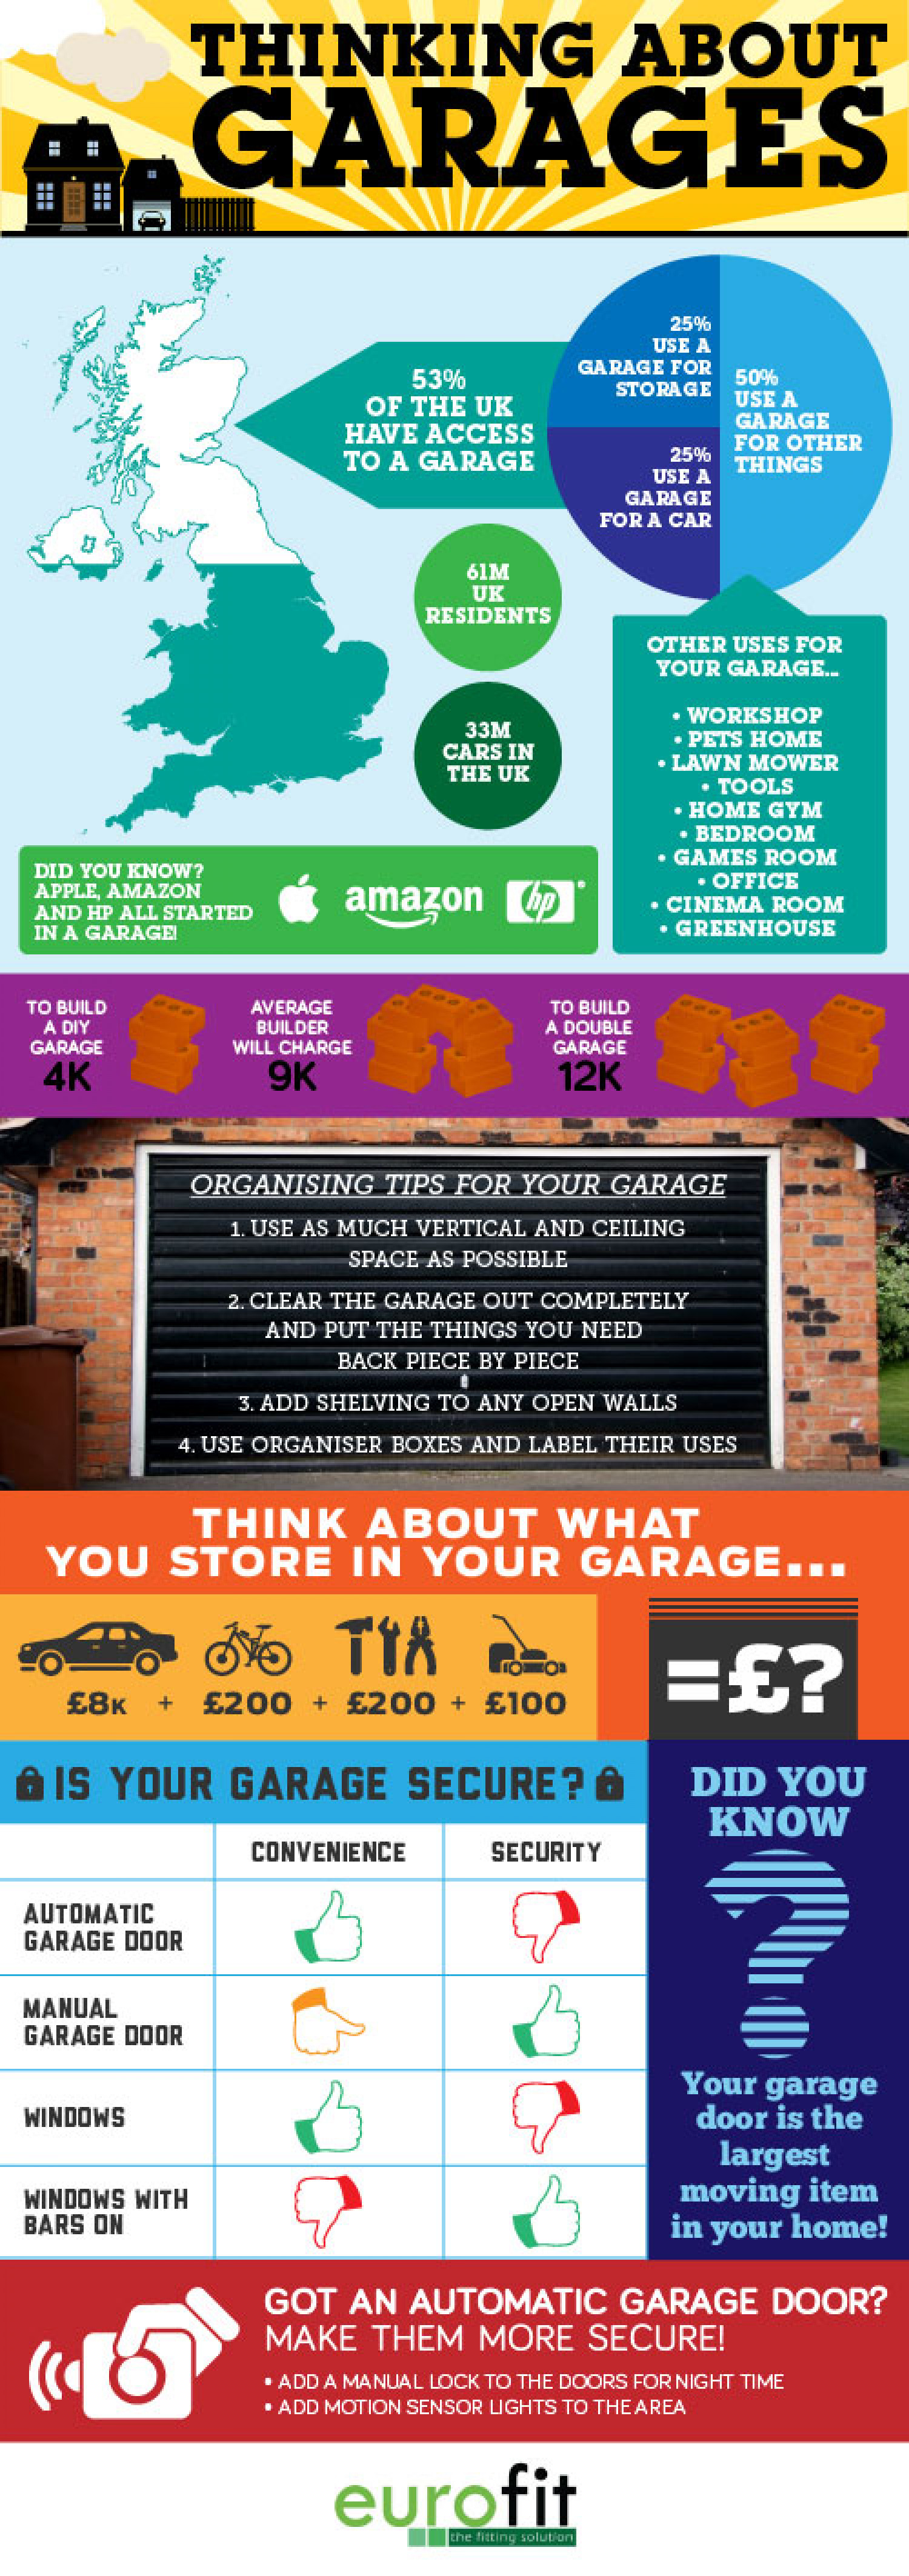 Thinking About Garages Infographic